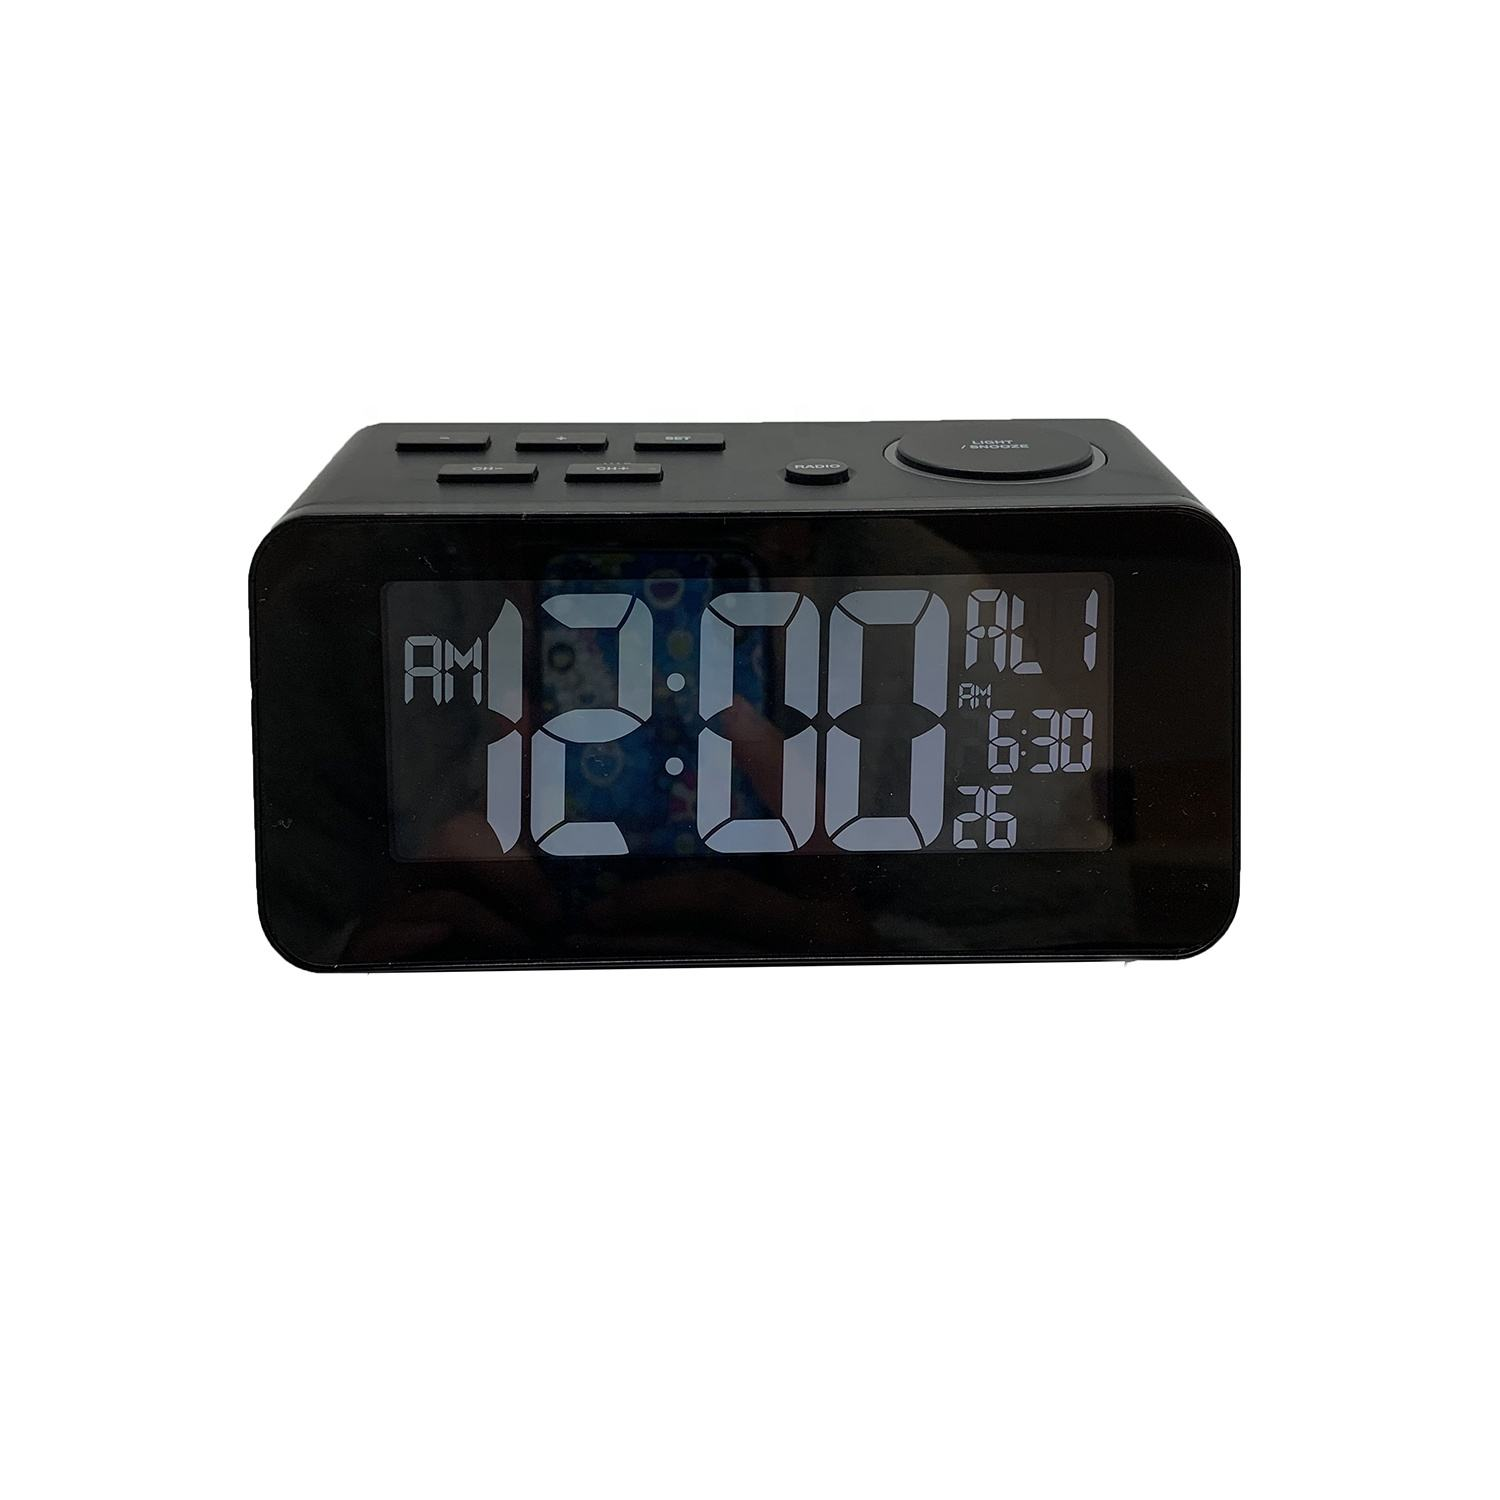 LCD com display de temperatura de carregamento USB rádio despertador Digital Desktop Despertador Rádio <span class=keywords><strong>FM</strong></span>